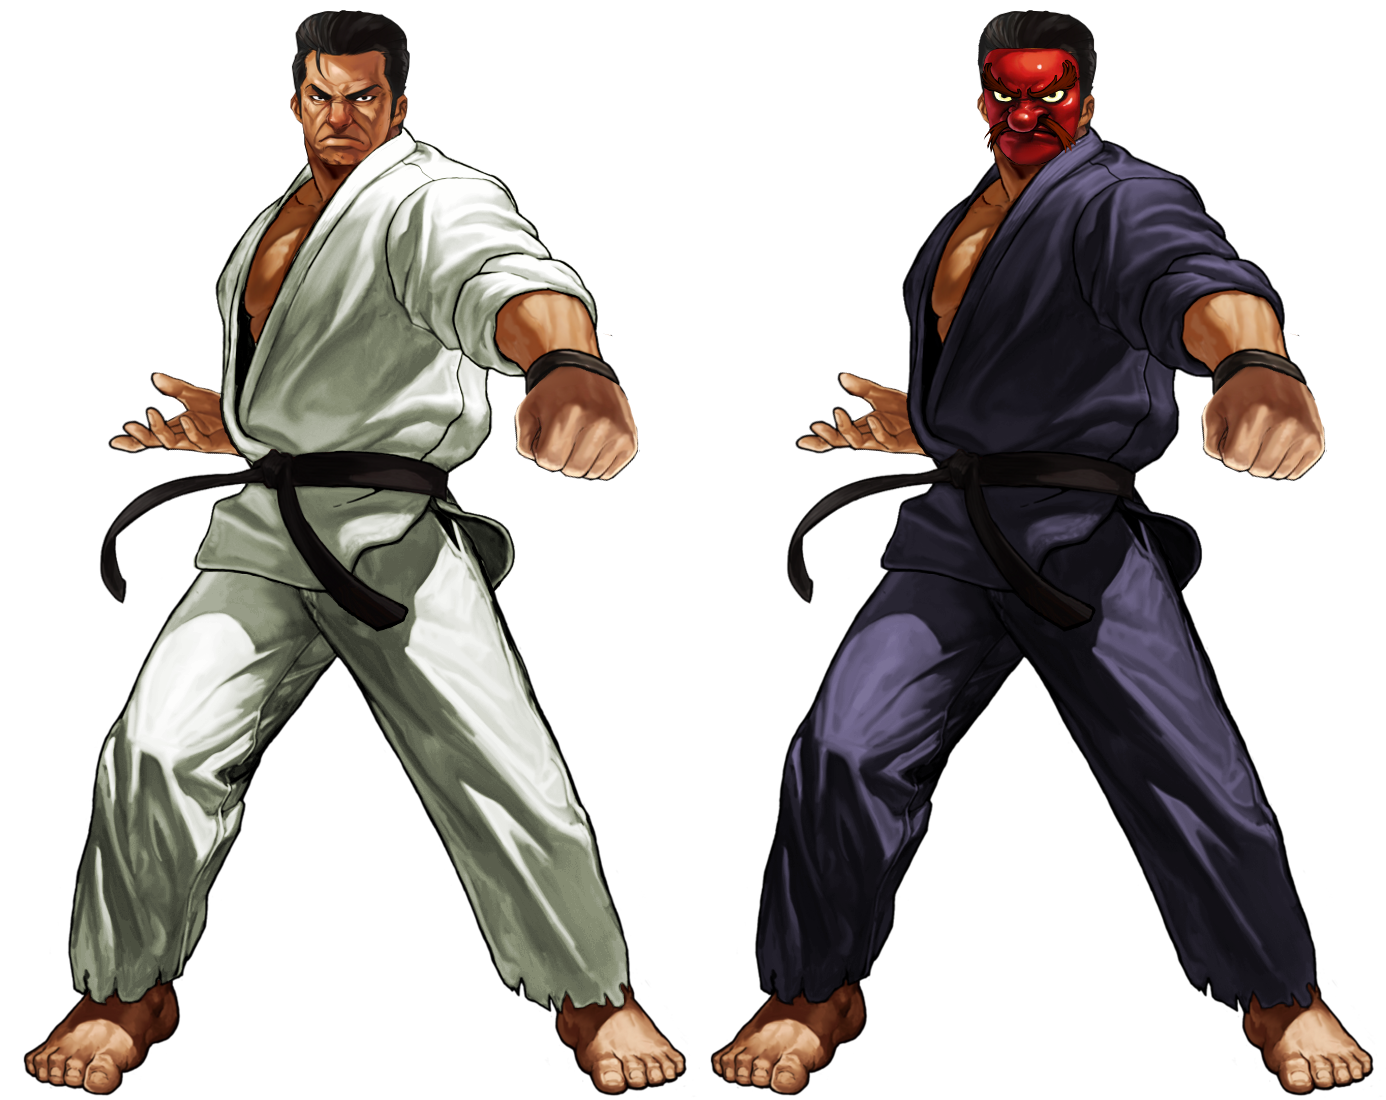 Fighting clipart martial art. Karate png images free